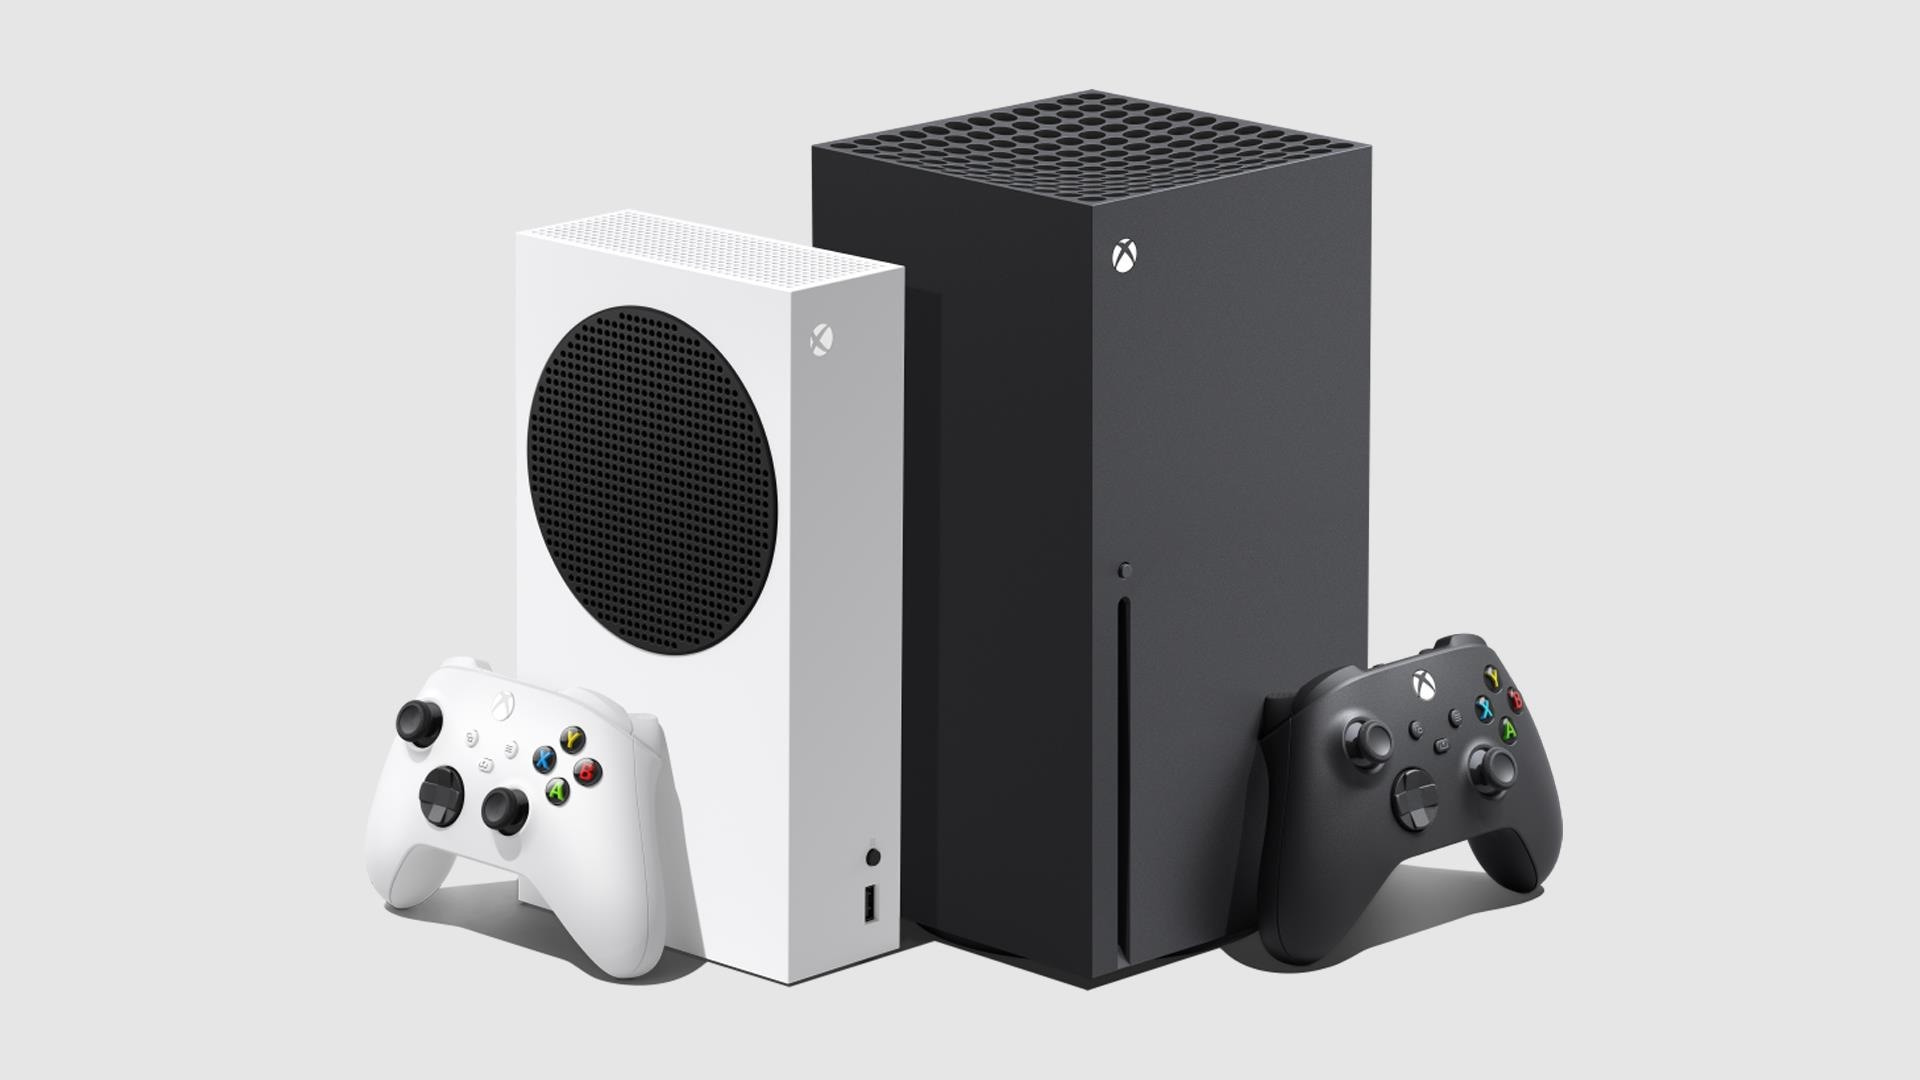 Xbox Series X | S: When will there be stock in 2021?